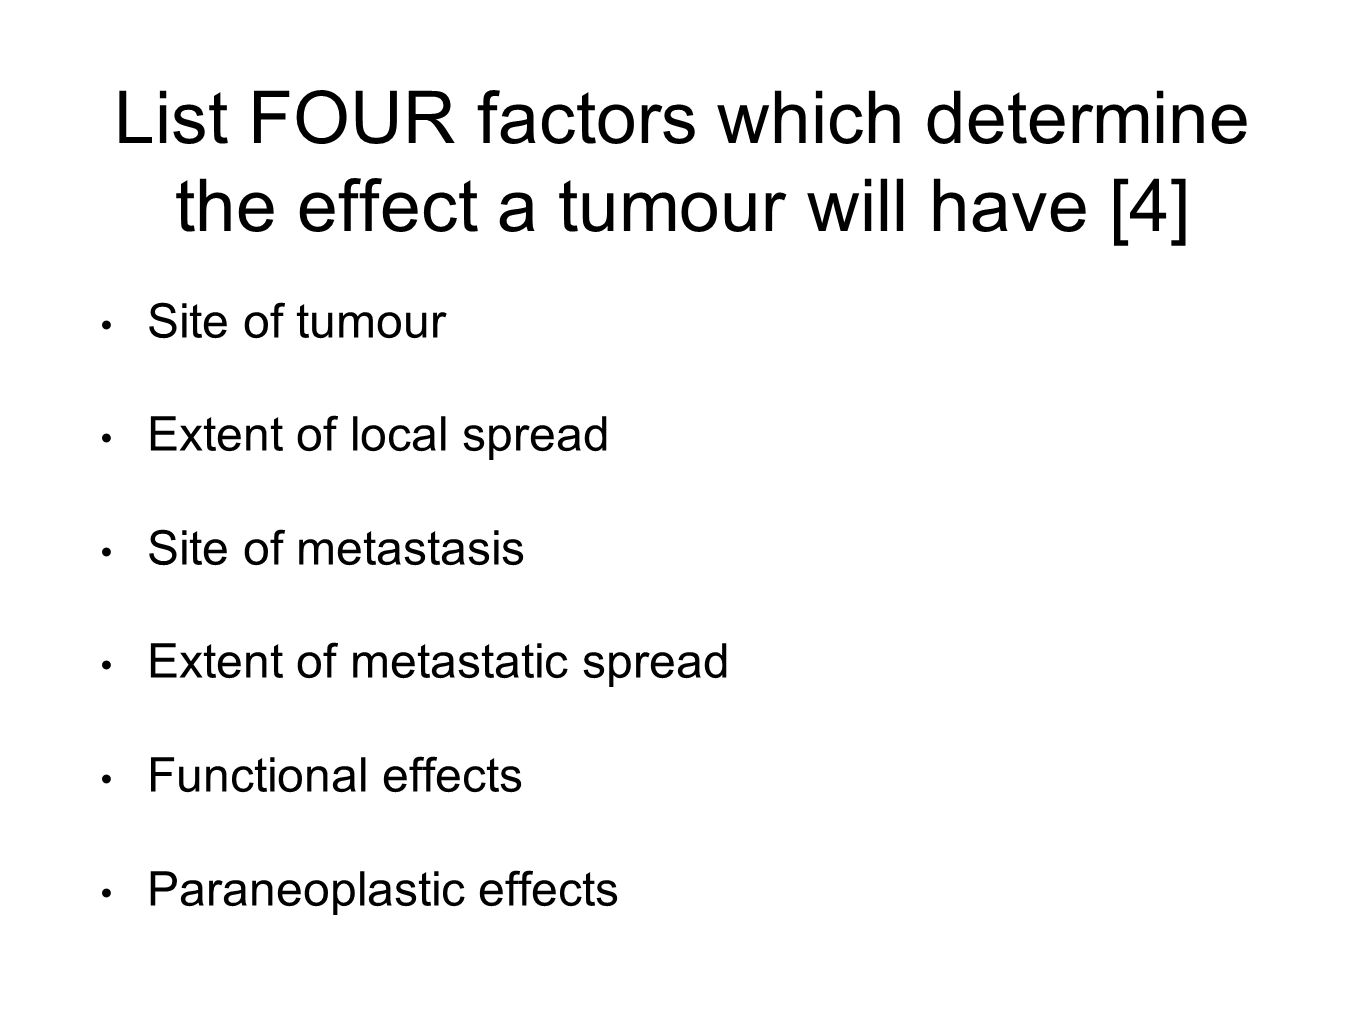 List FOUR factors which determine the effect a tumour will have [4] Site of tumour Extent of local spread Site of metastasis Extent of metastatic spread Functional effects Paraneoplastic effects